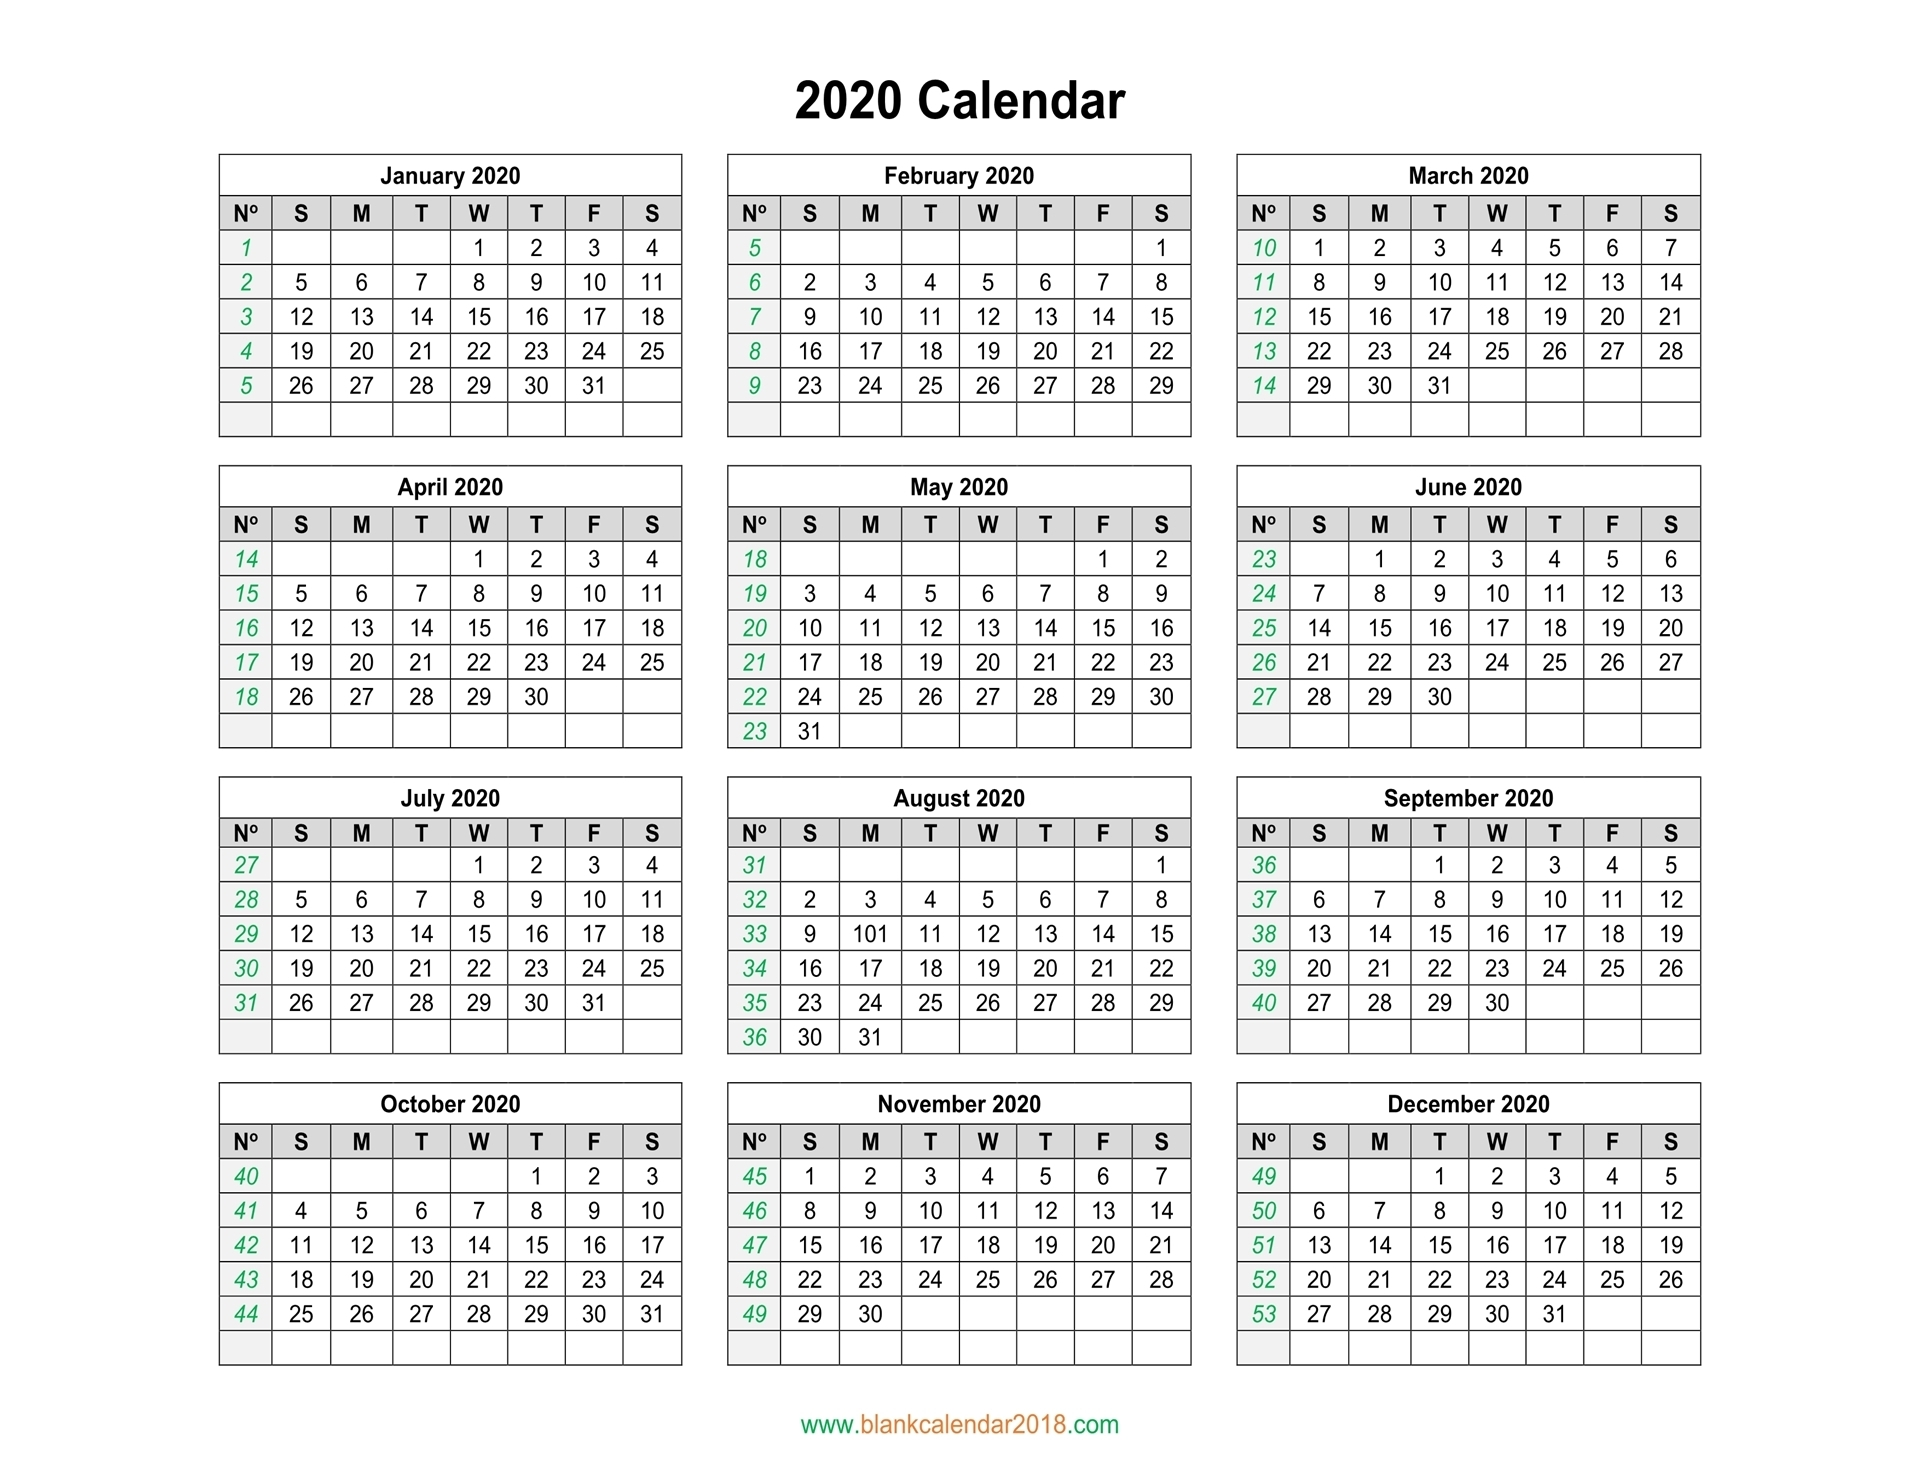 Blank Calendar 2020 for Yearly Monday To Sunday Calendar 2020 With Week Numbers